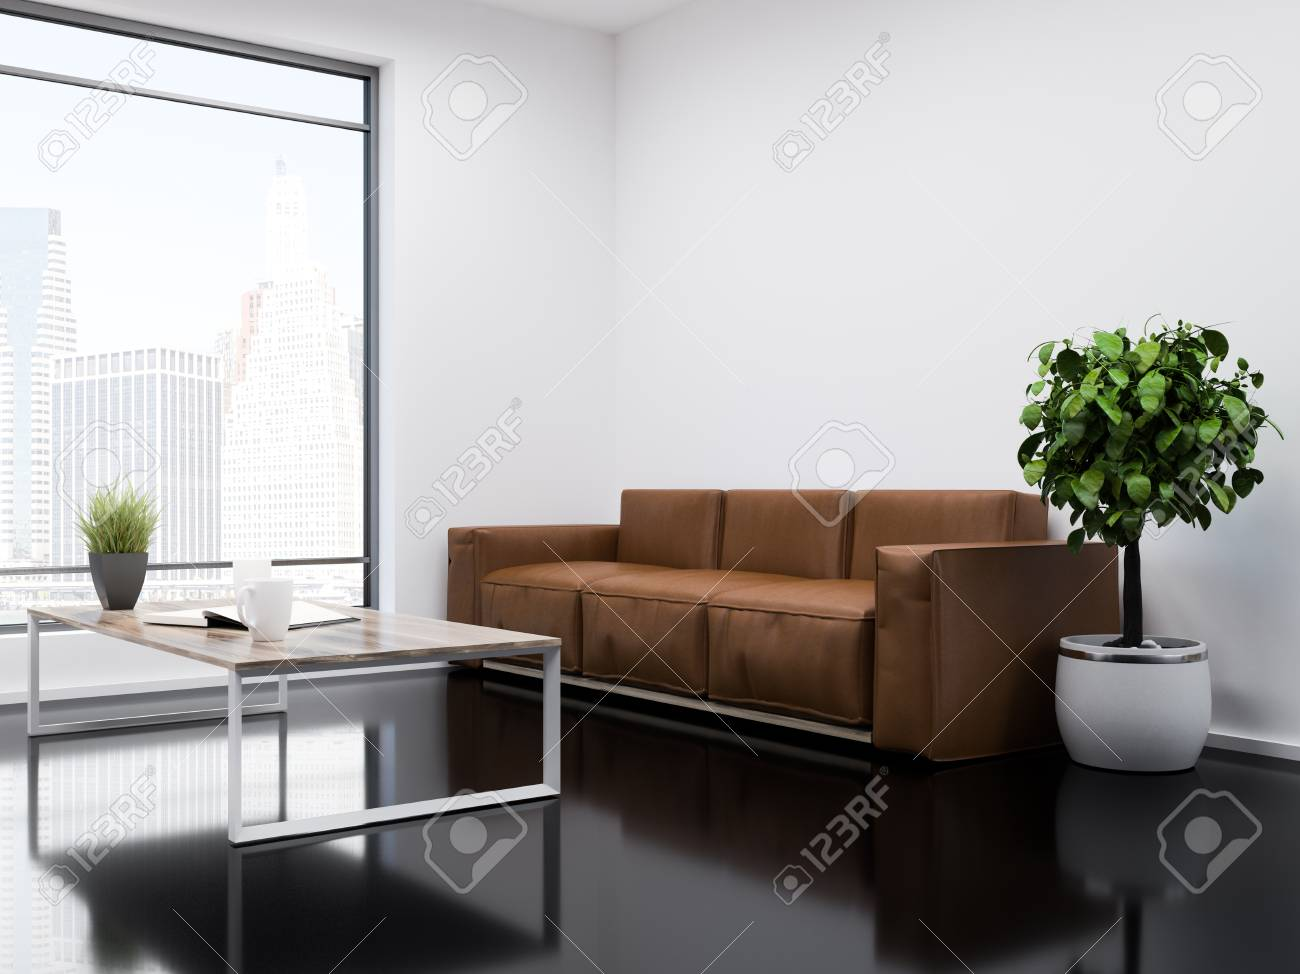 Phenomenal White Wall Office Waiting Room Interior With A Black Glass Like Pdpeps Interior Chair Design Pdpepsorg